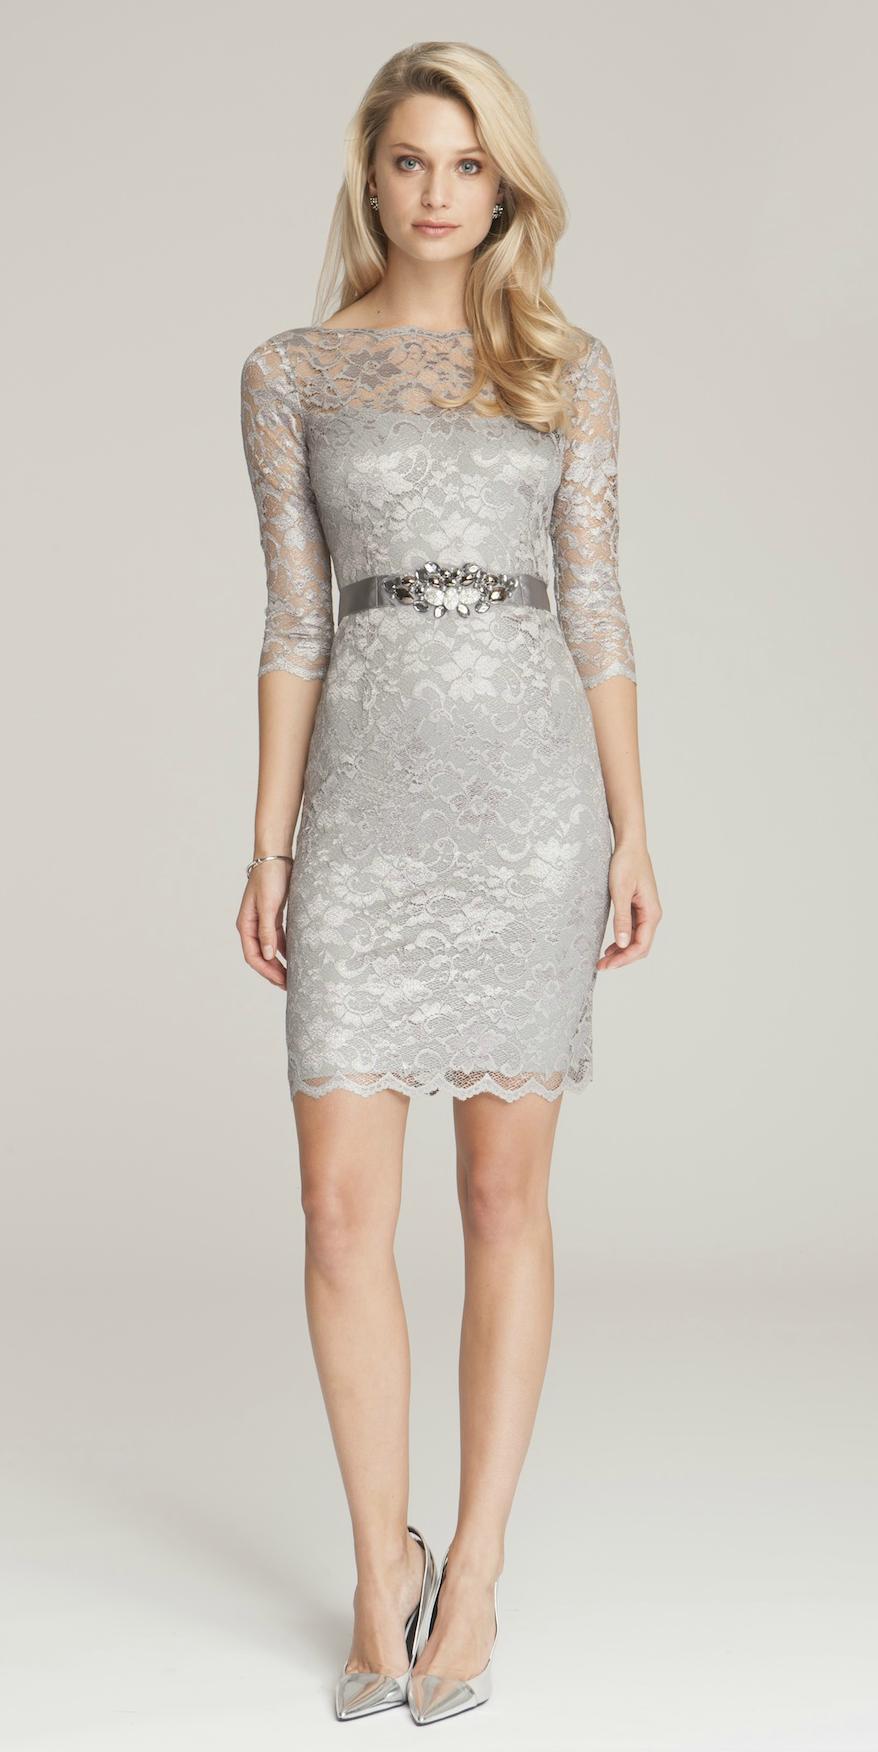 silver or gray mother of the bride dresses lace cocktail